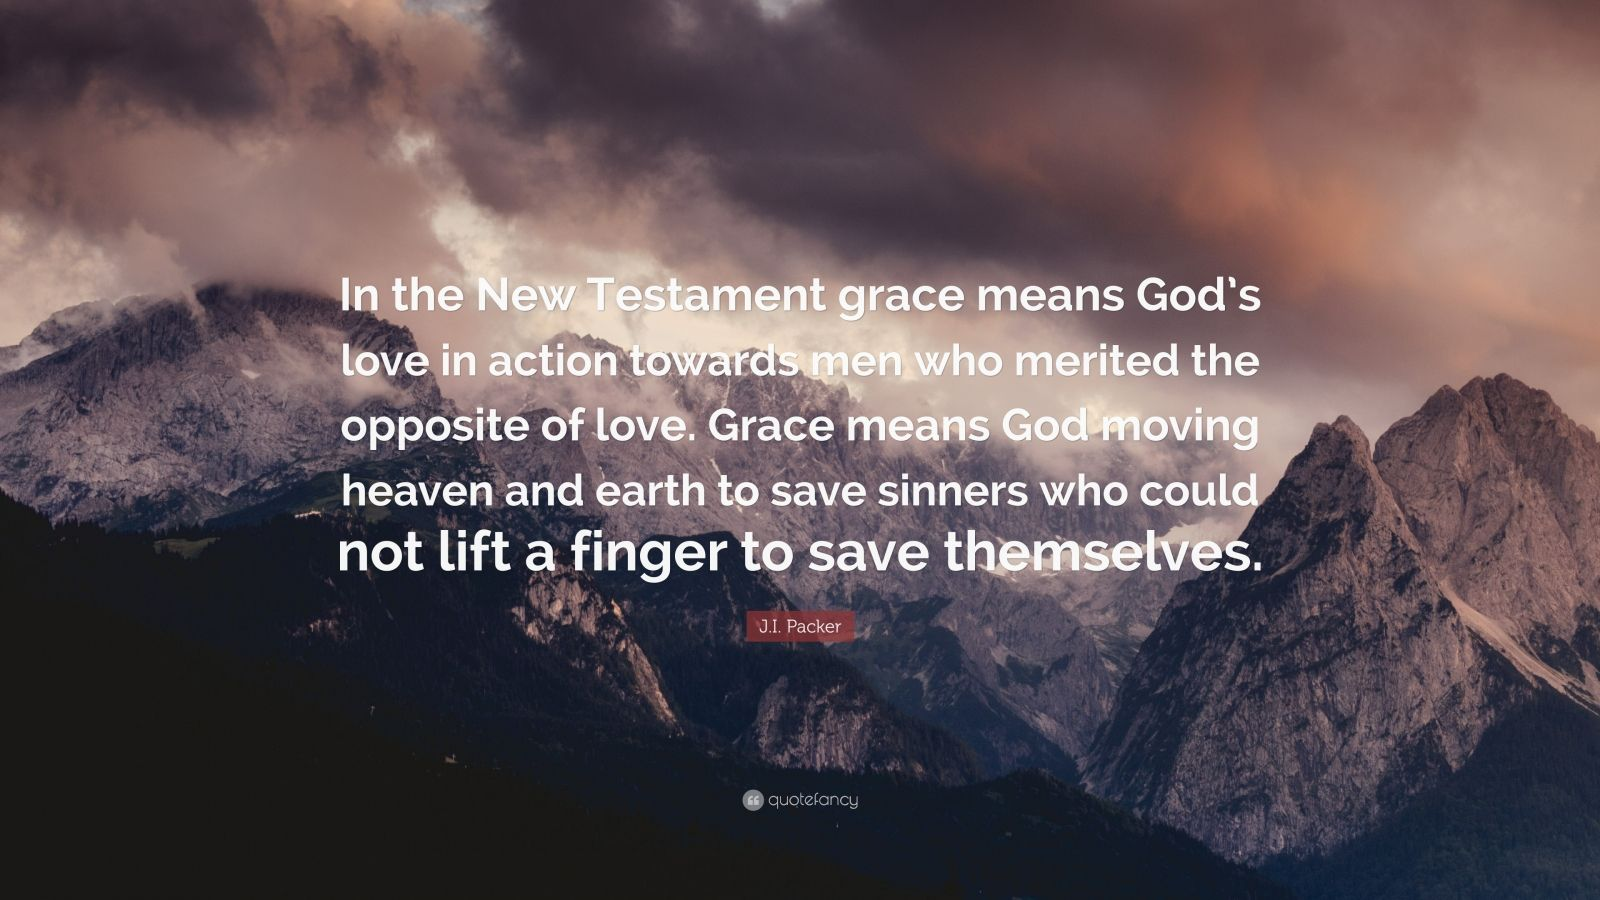 "J.I. Packer Quote: ""In the New Testament grace means God's love in action towards men who merited the opposite of love. Grace means God moving heaven and earth to save sinners who could not lift a finger to save themselves."""